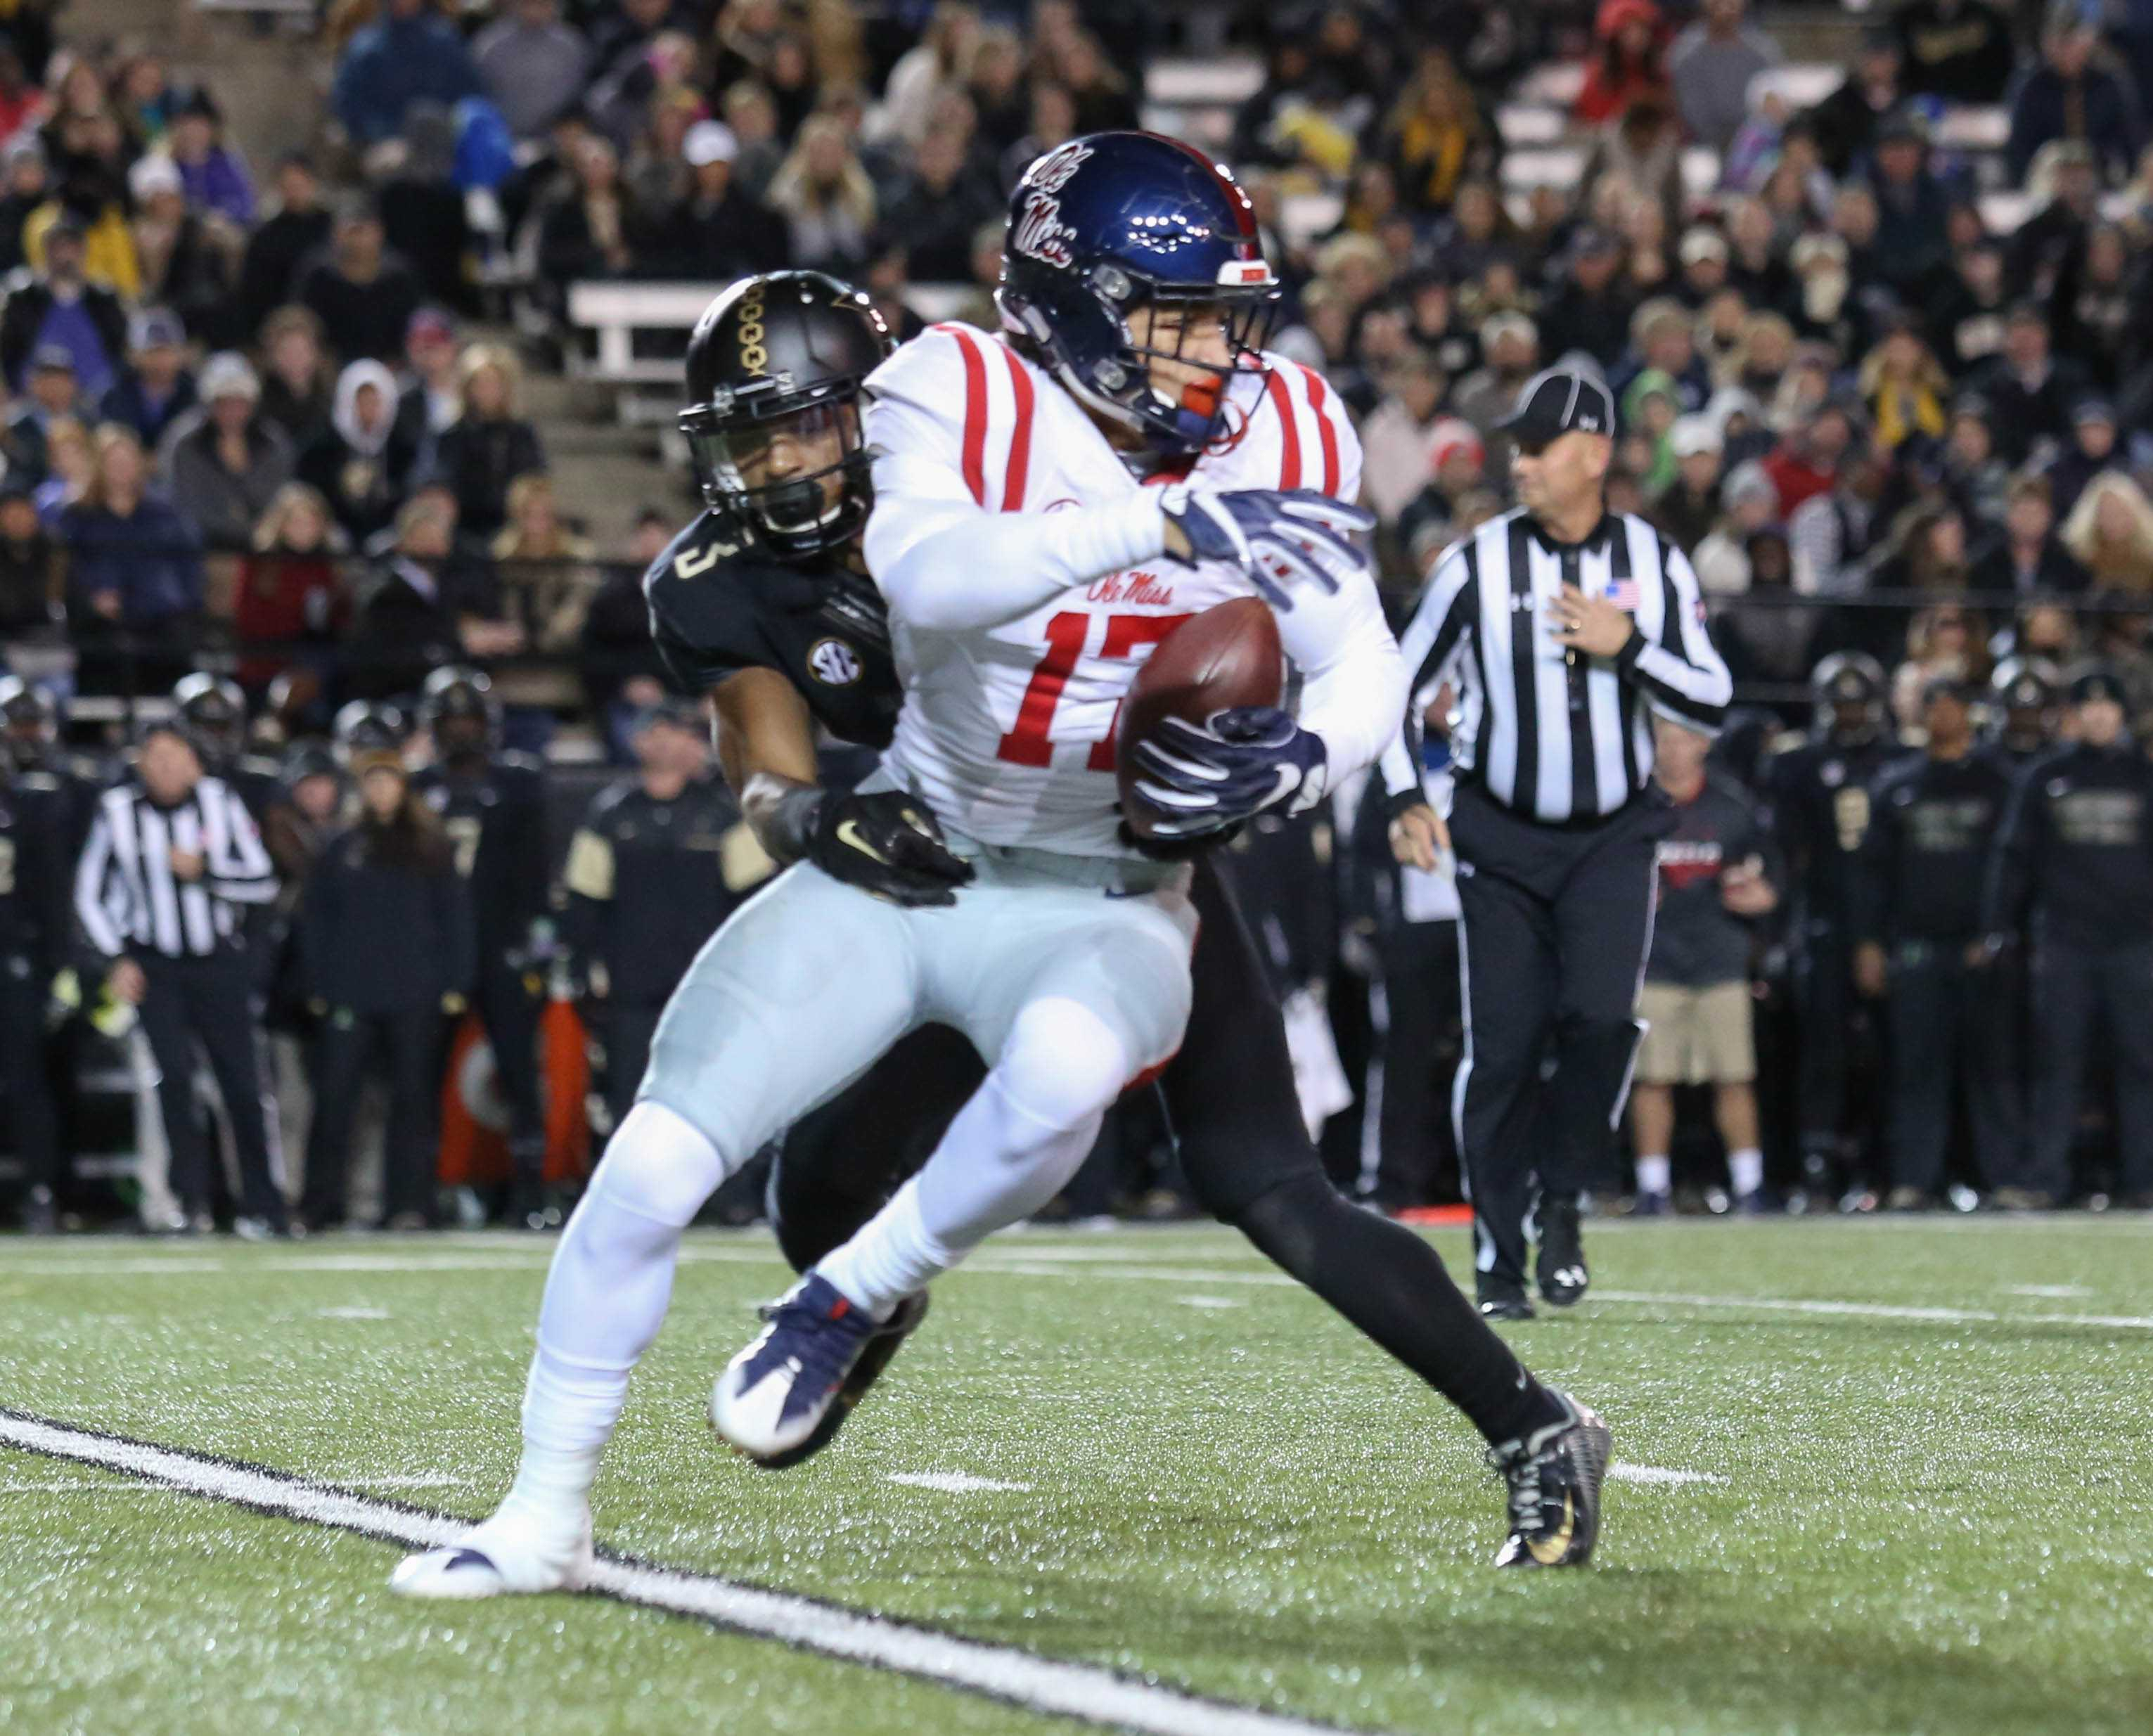 Behind Enemy Lines: Ole Miss Rebels